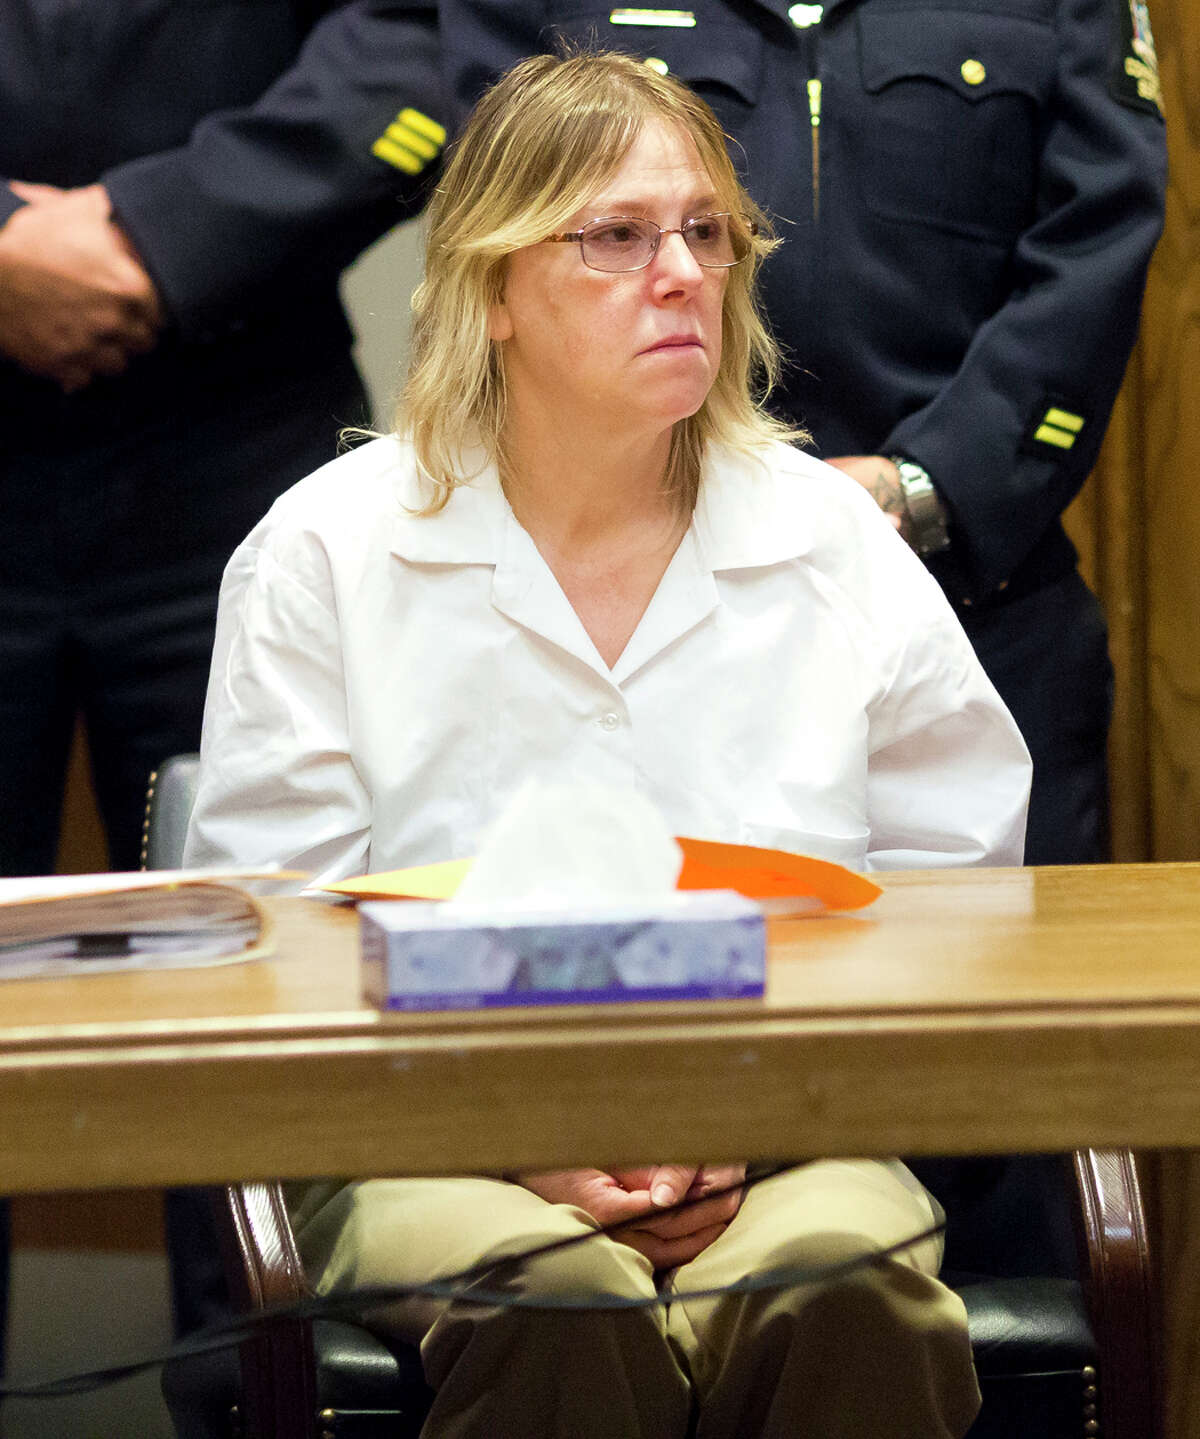 Joyce Mitchell, a former prison employee who provided the tools that two murderers used to cut their way out of a maximum-security facility in northern New York, listens intently to Judge Kevin Ryan during a restitution hearing at the Clinton County Government Center, Friday, Nov. 6, 2015, in Plattsburgh, N.Y. Mitchell's will pay $79,841, plus a 10 percent surcharge, for the damage Richard Matt and David Sweat caused by using hacksaw blades and other tools she provided to break out of Clinton Correctional Facility in June, a prosecutor said. (Gabe Dickens/Press-Republican via AP)